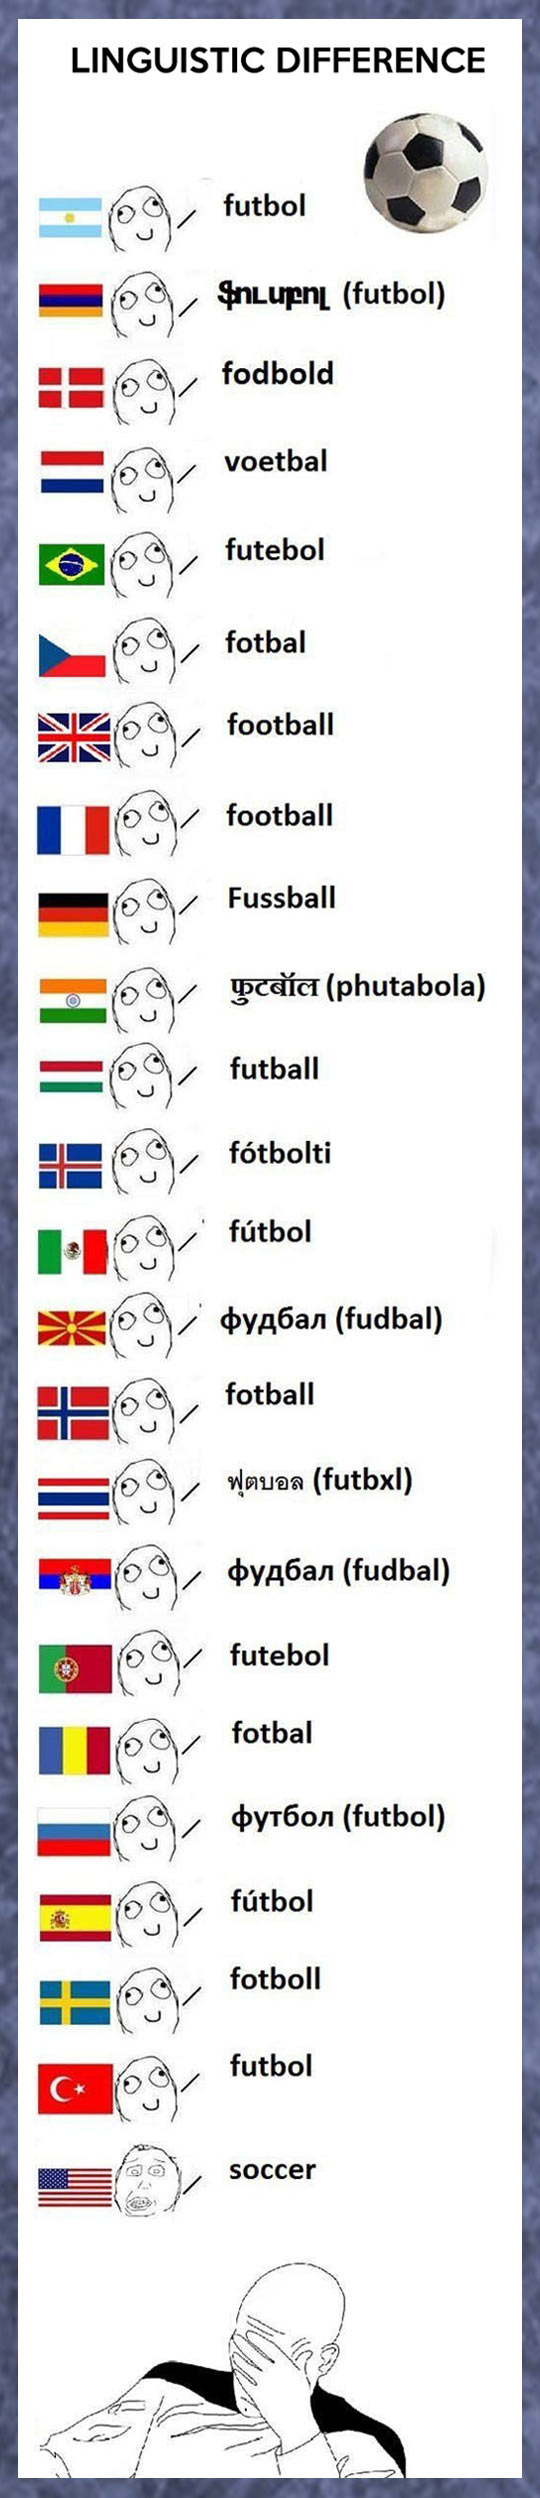 All languages are similar, right?